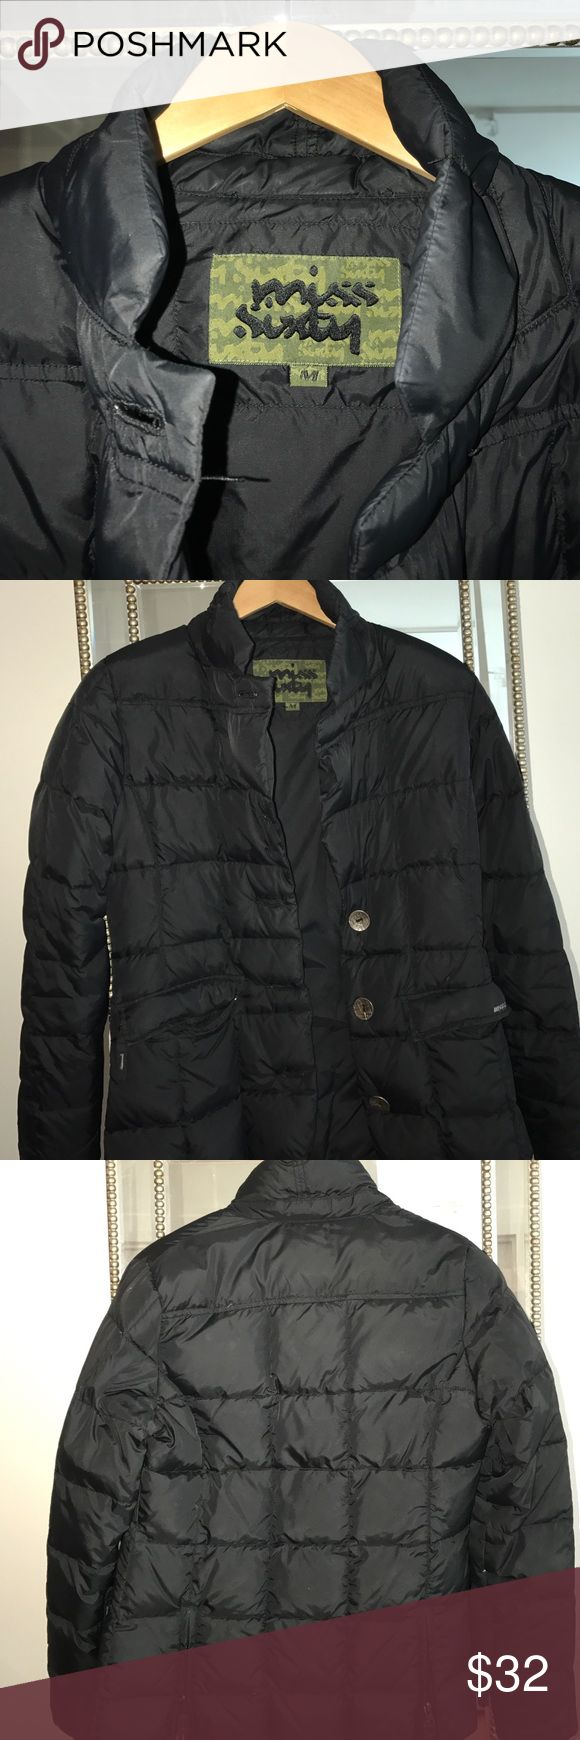 Miss Sixty Puffer Jacket Miss Sixty black Puffer Jacket that comes to about the hip. The jacket had a button closure. The two top buttons are missing and need to be replaced (reflected in the price) Miss Sixty Jackets & Coats Puffers